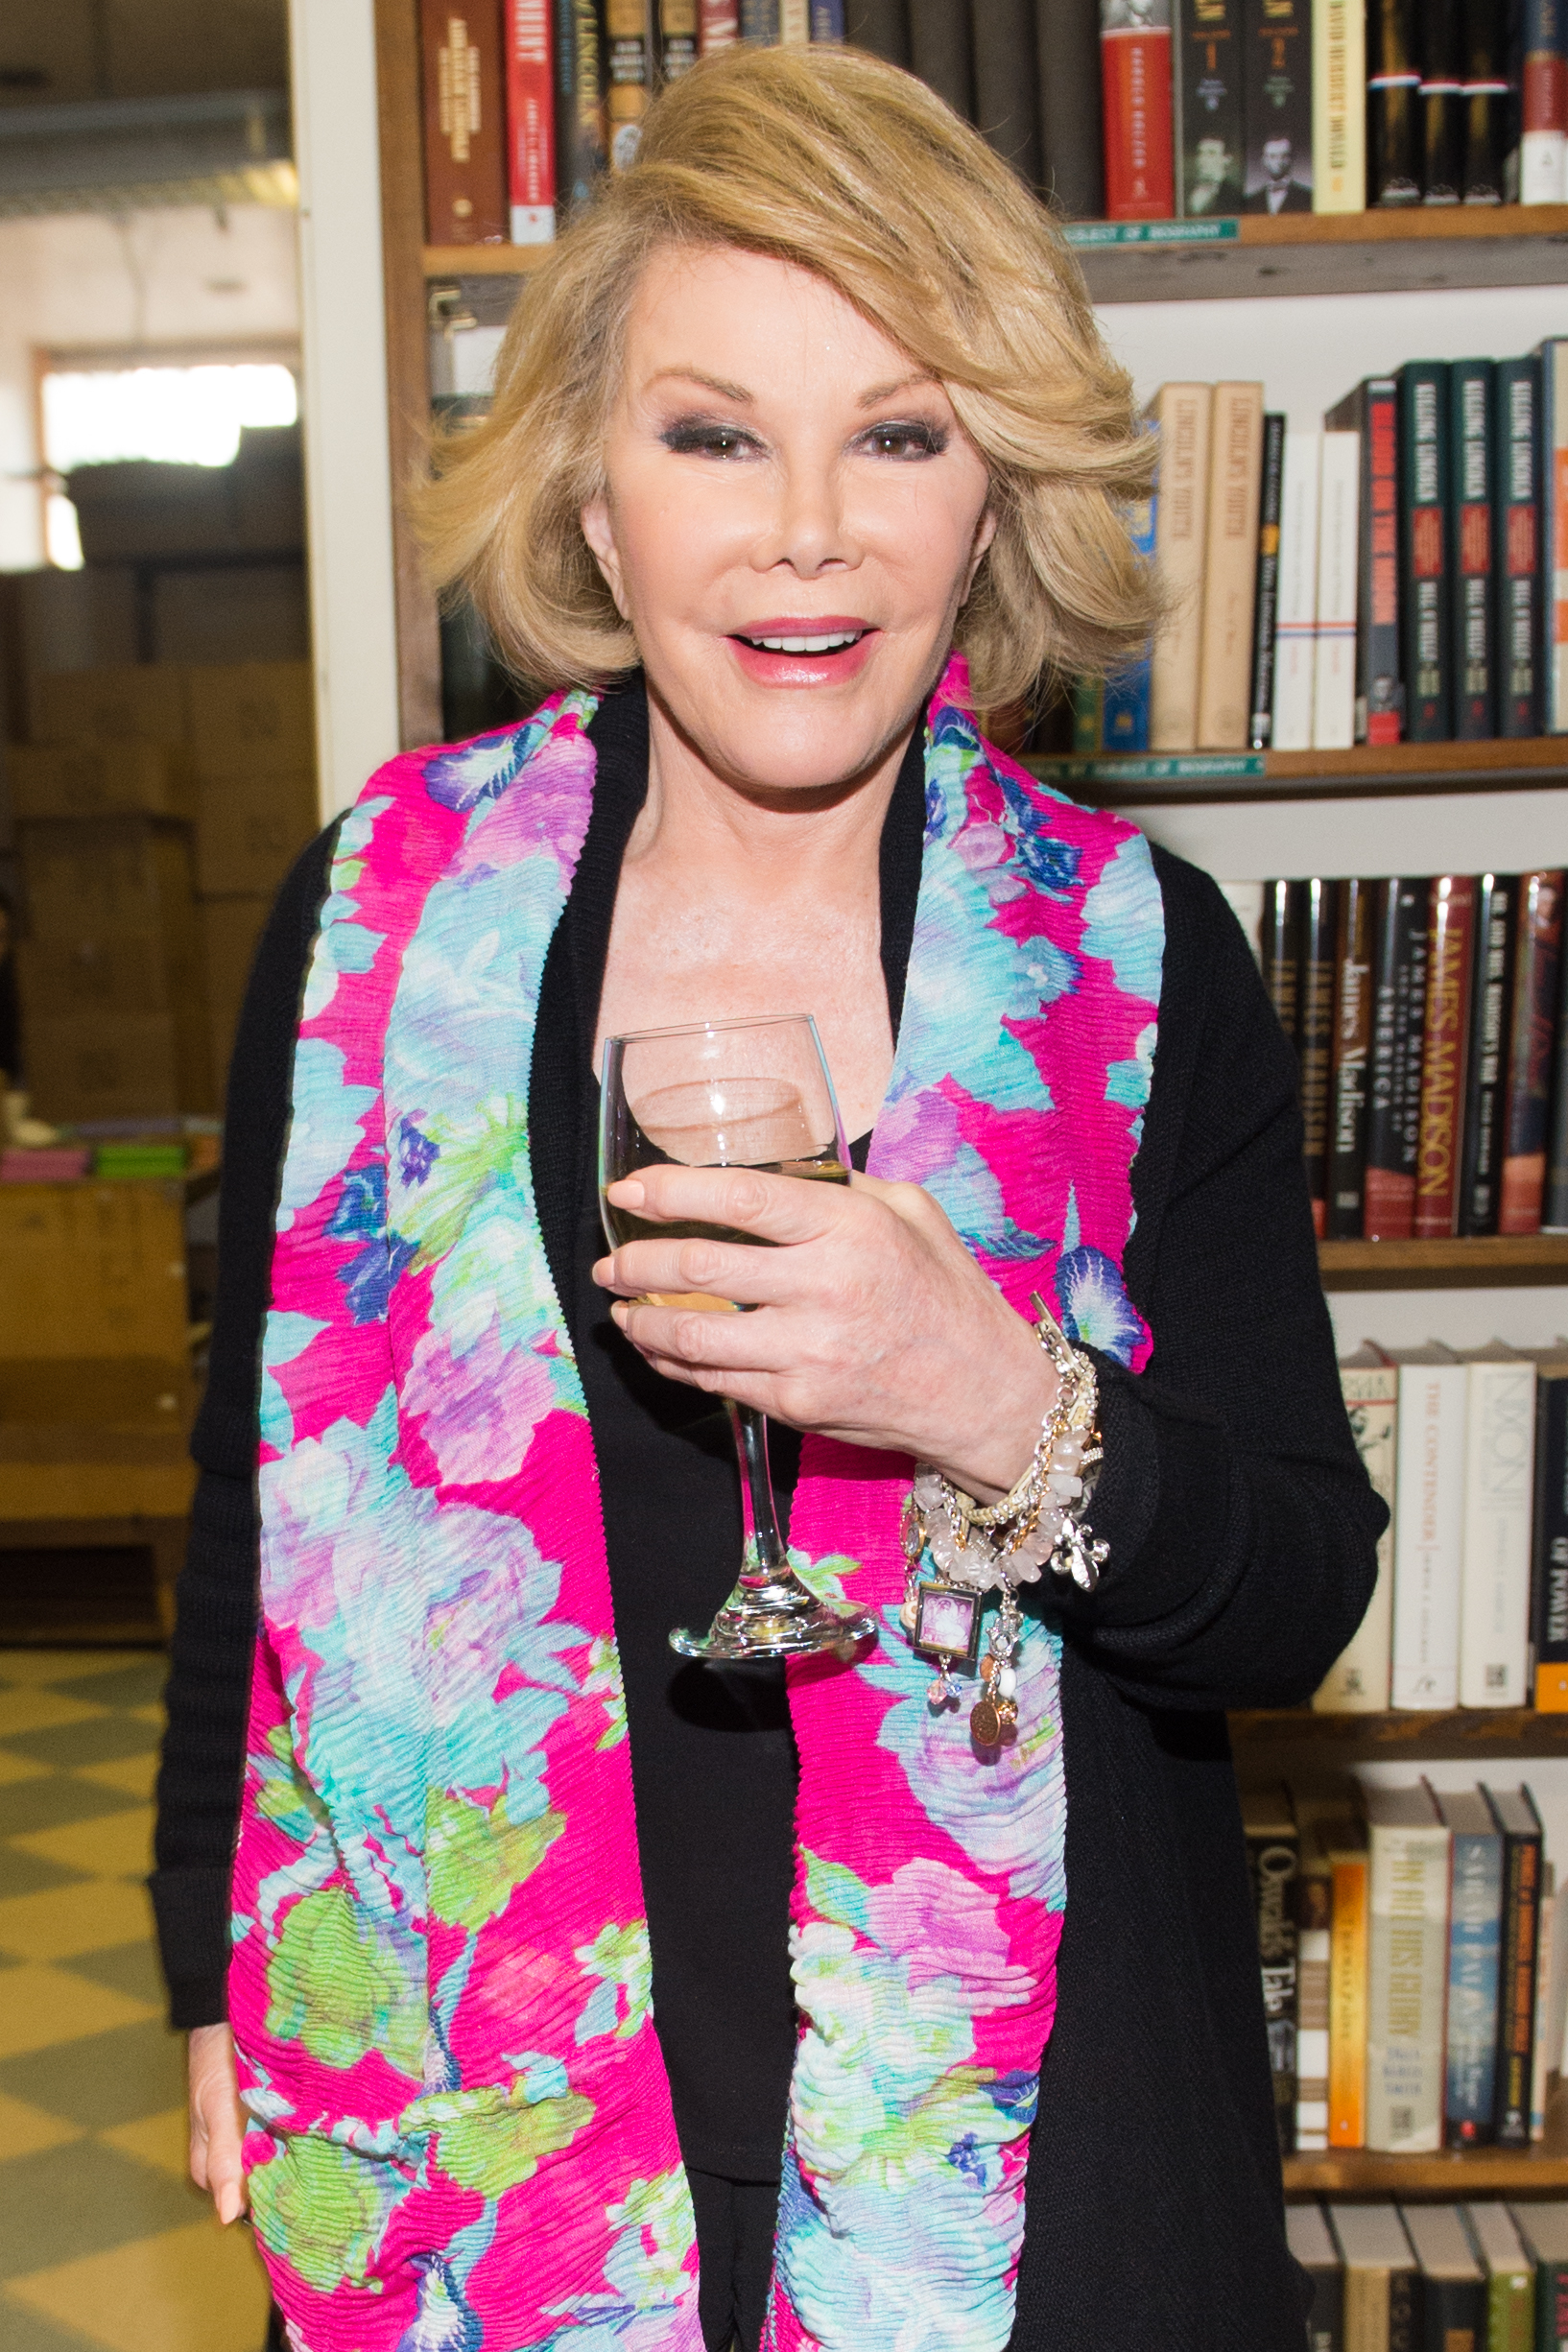 Joan Rivers leaves money to multiple charities in her will